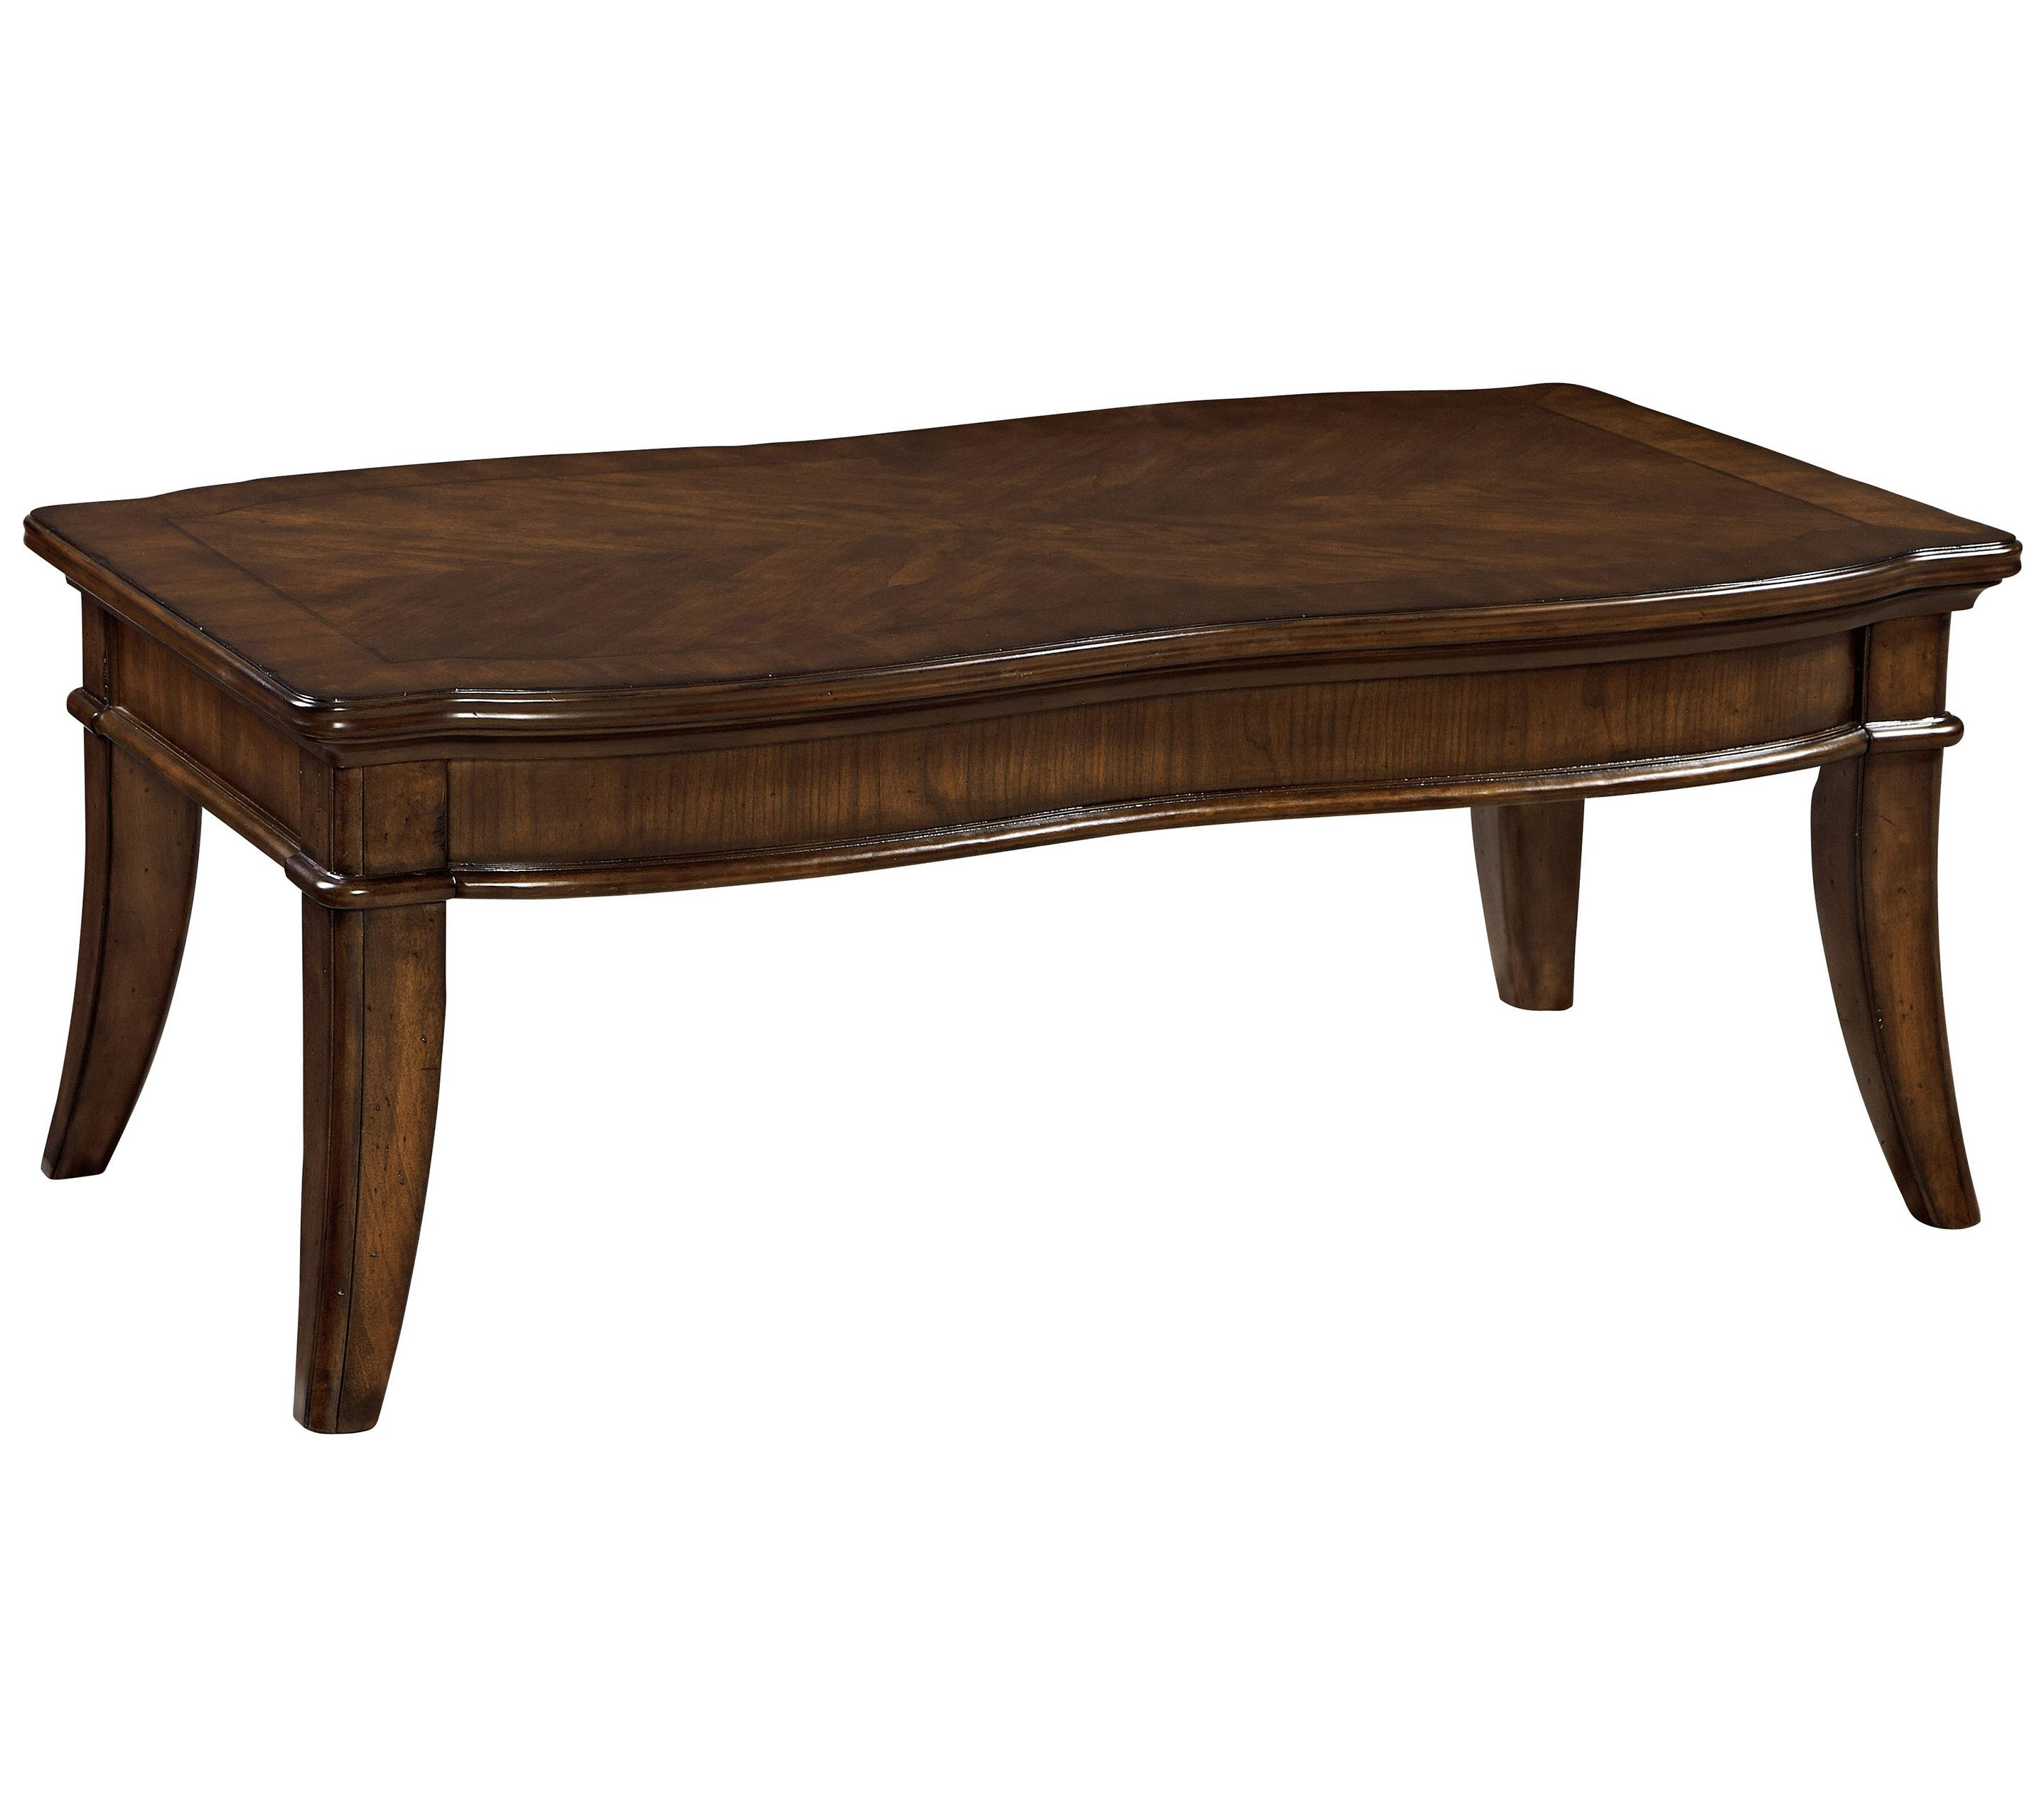 Broyhill Furniture Elaina Rectangular Cocktail Table - Item Number: 4640-001